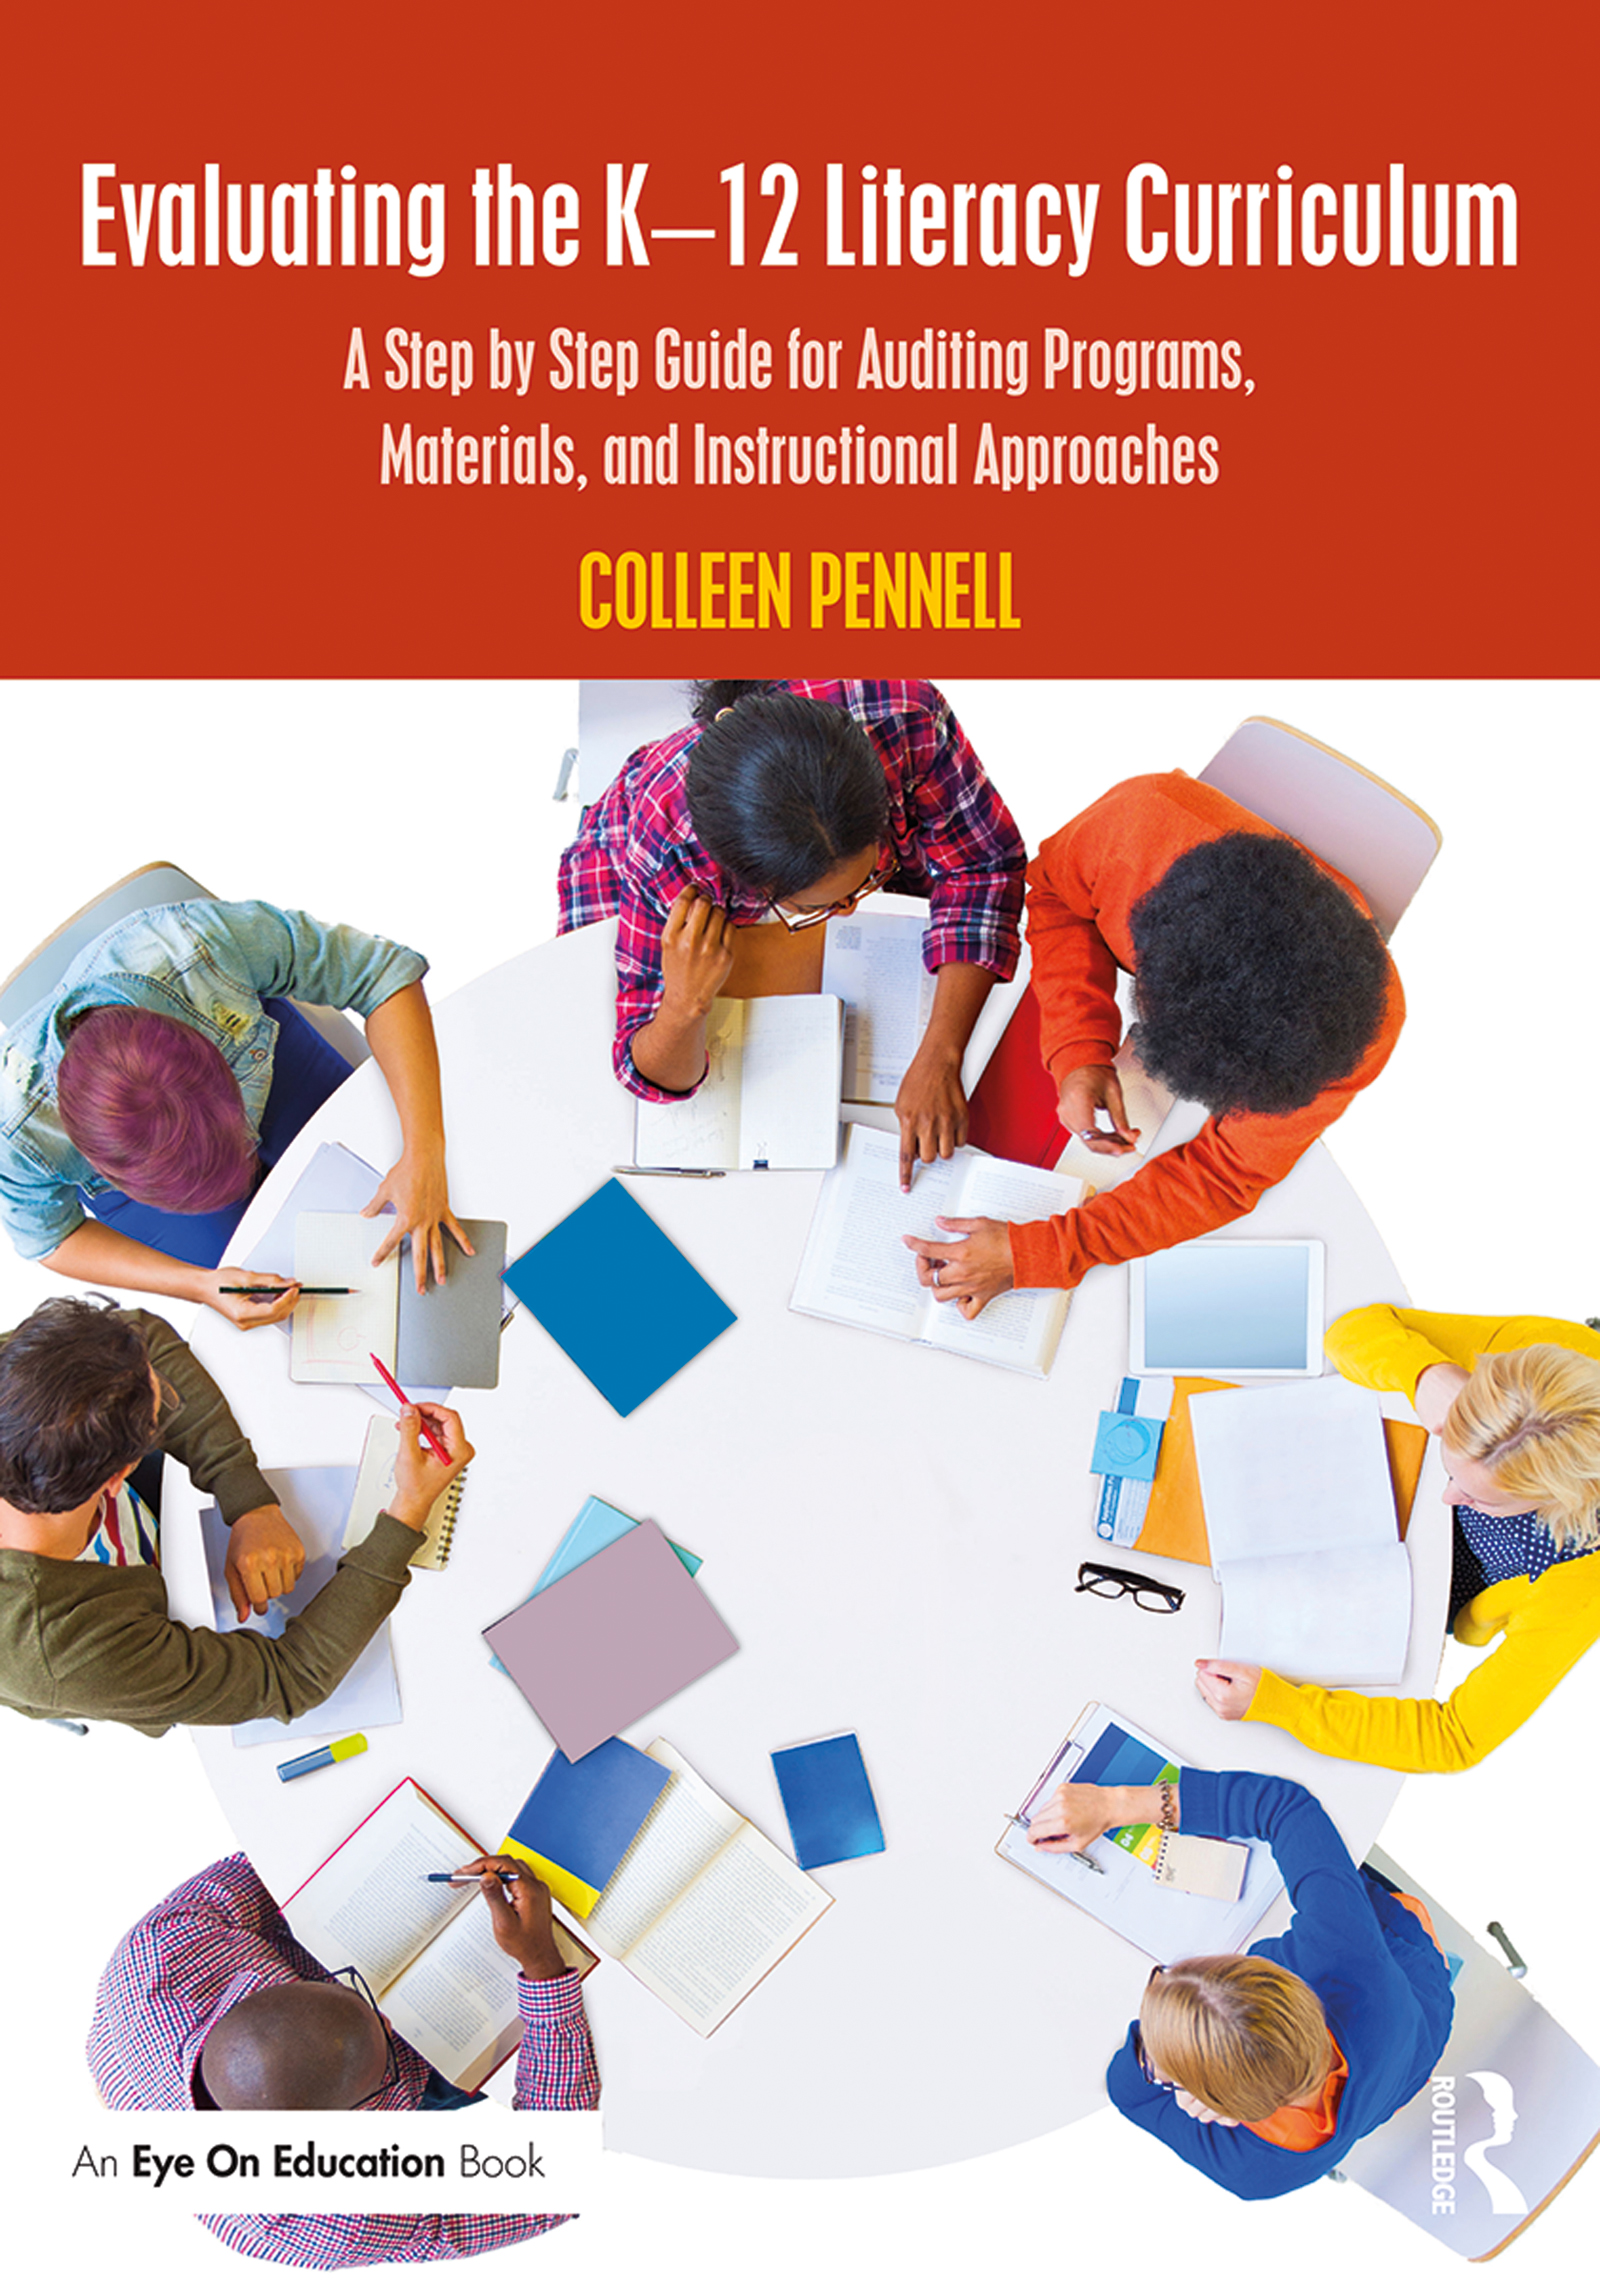 Evaluating the K-12 Literacy Curriculum: A Step by Step Guide for Auditing Programs, Materials, and Instructional Approaches book cover